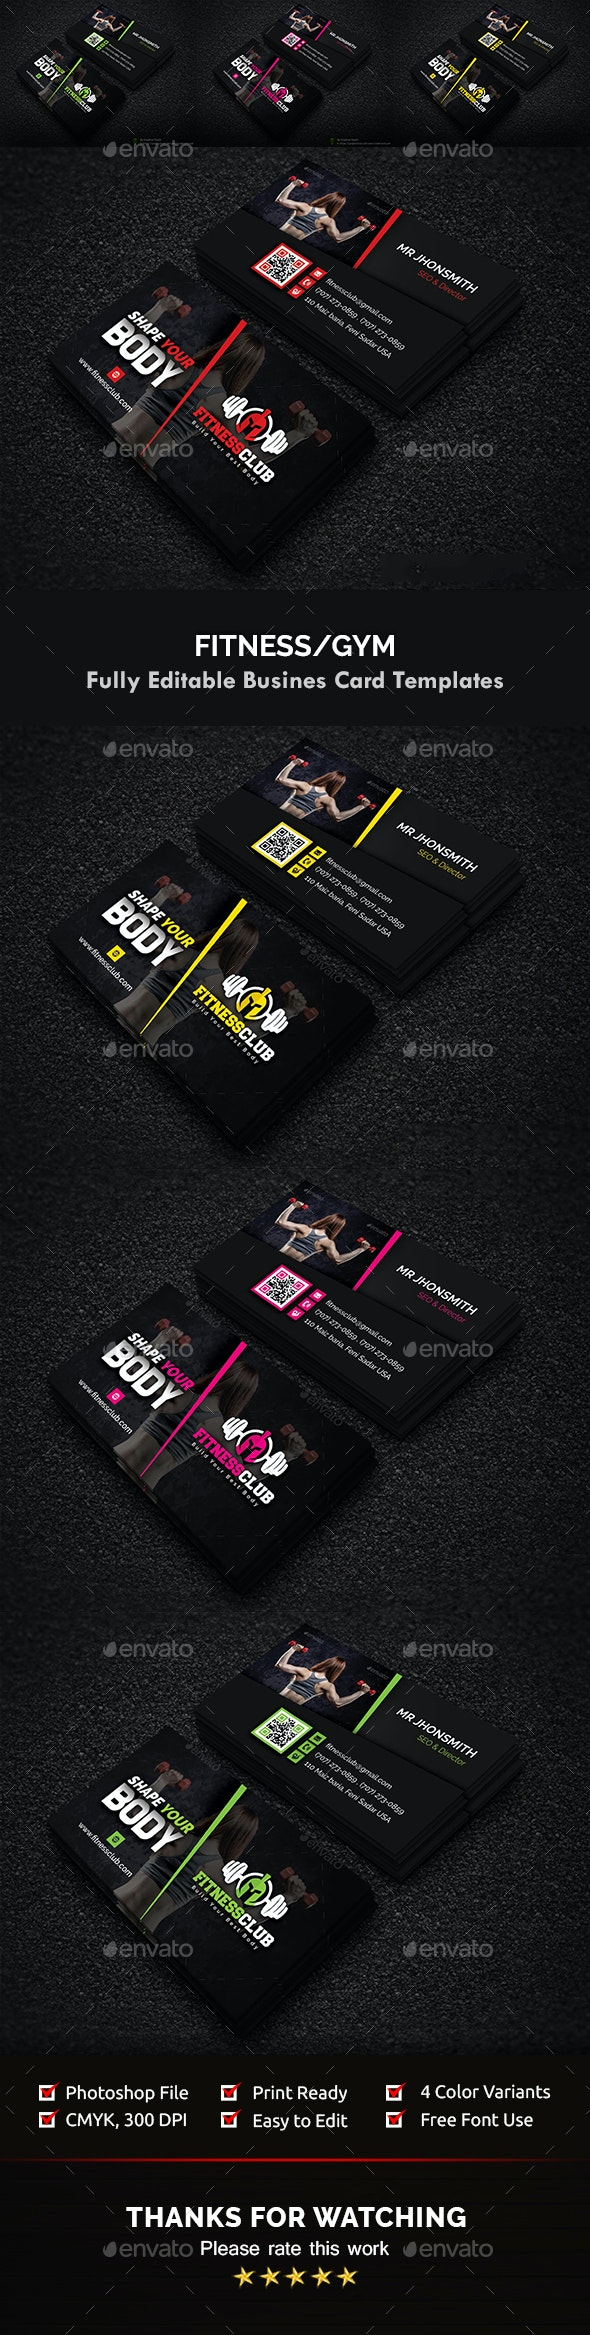 Fitness / Gym Business Card Template - Creative Business Cards